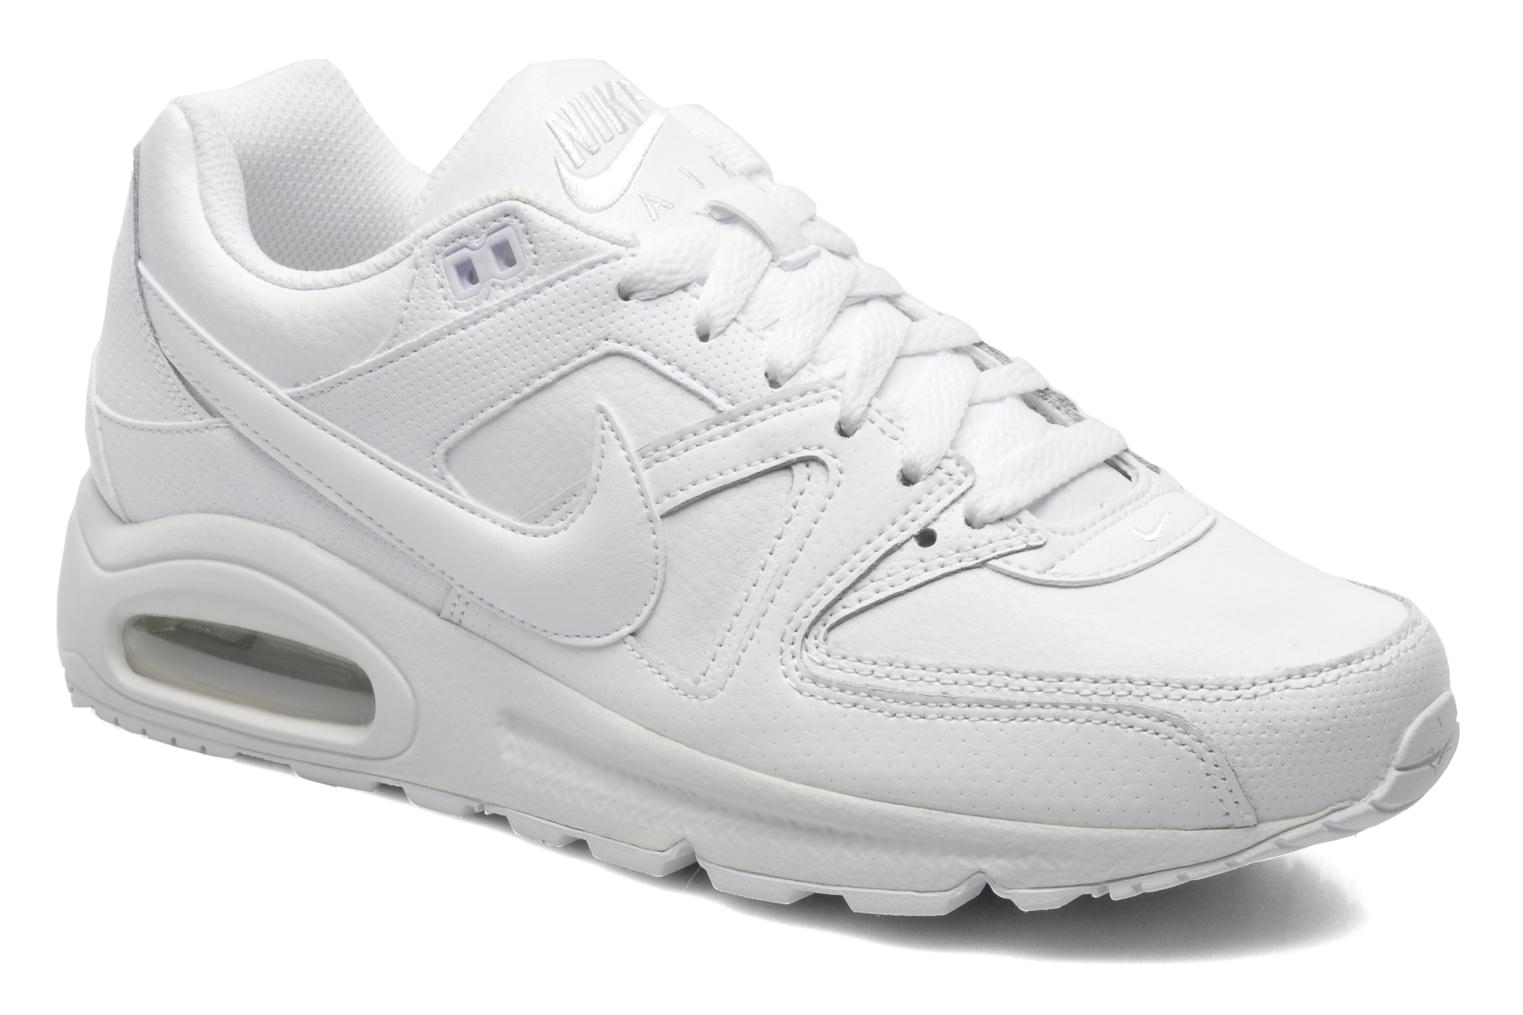 dd6143b91f561 ... homme Baskets Nike Air max command leather Blanc vue détailpaire ...